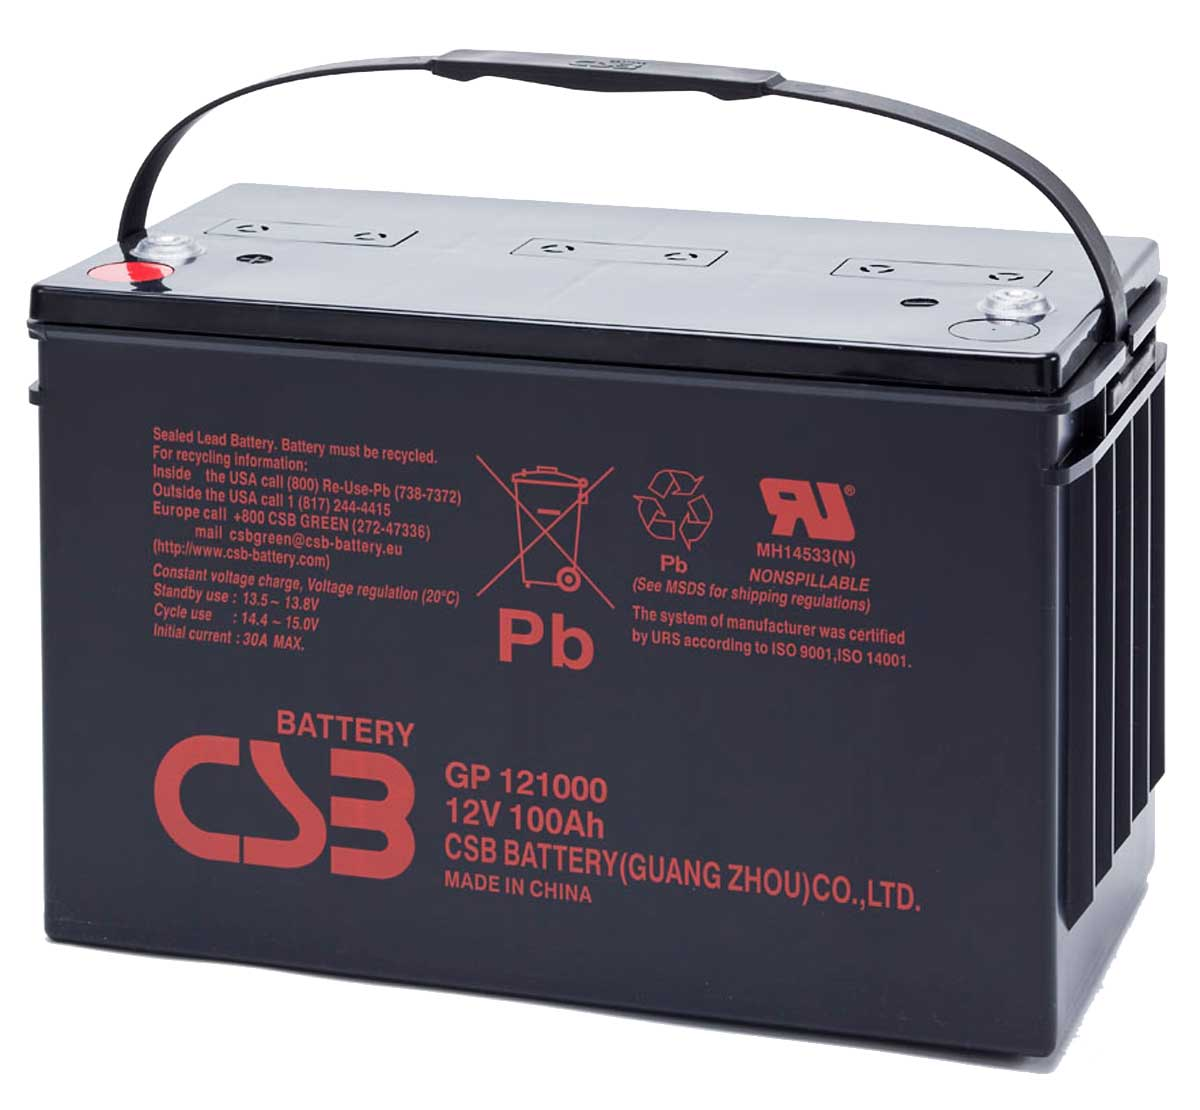 Csb Gp121000 12v 100ah Sealed Lead Acid Battery Mds Battery